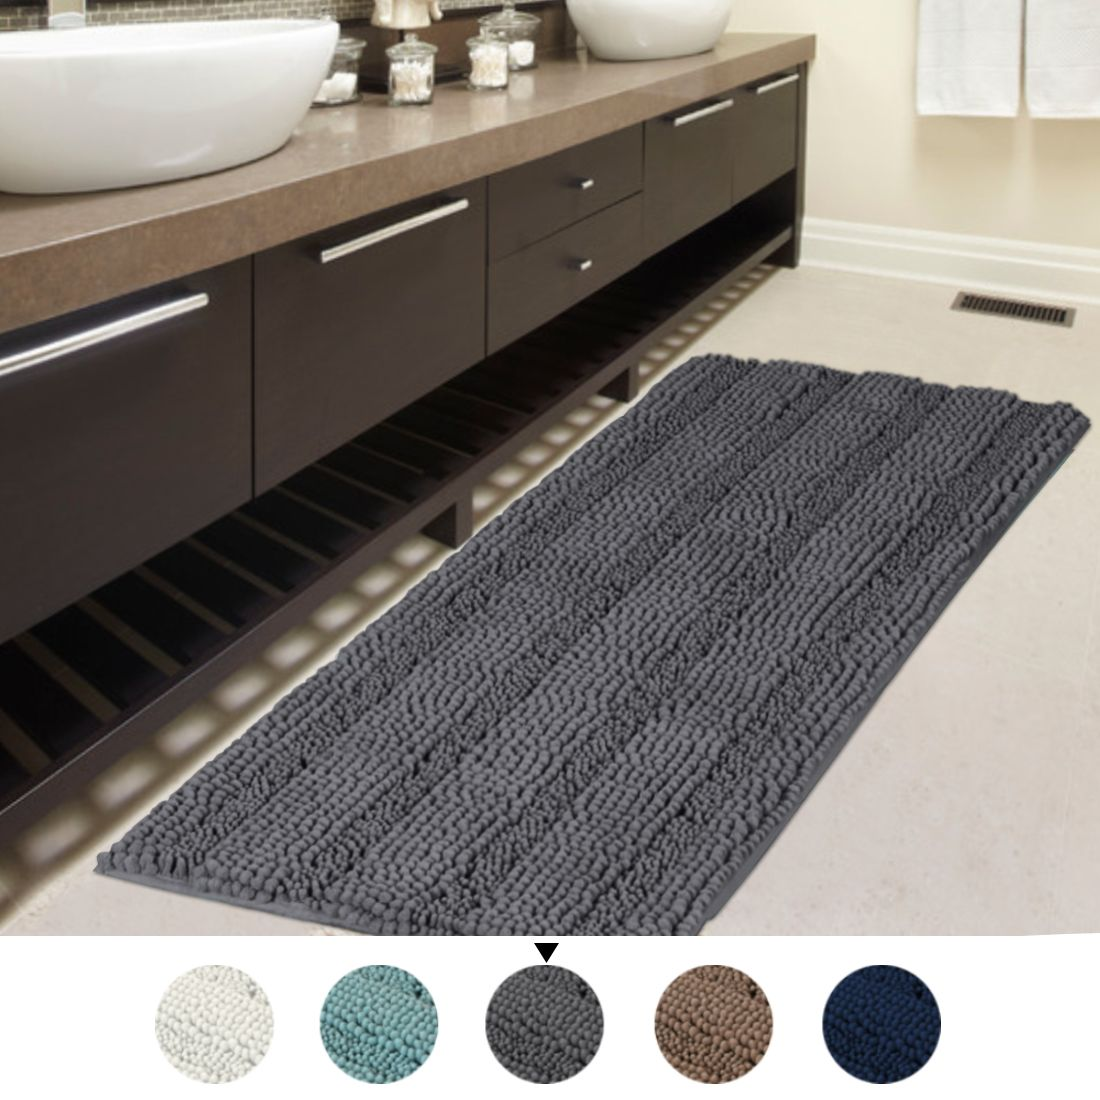 47x17 Inch Oversize Non Slip Bathroom Rug Shag Shower Mat Soft Thick Floor Mat Machine Washable Bath Mats With Water Absorbent Soft Microfibers Long Striped Rug In 2020 Washable Bath Mat Bathroom Rugs